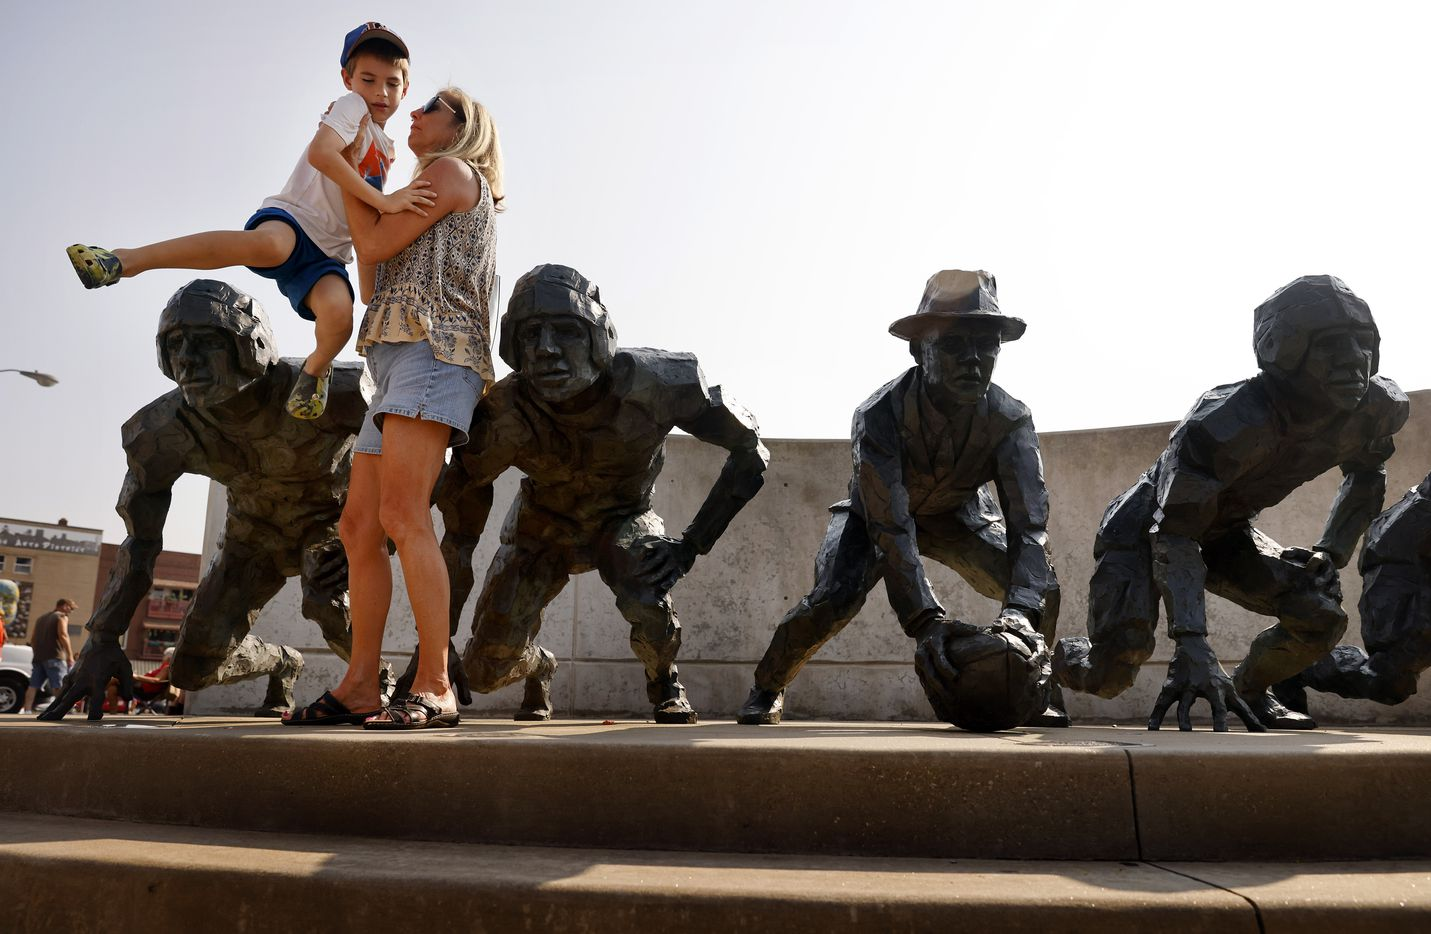 Cherrie Yerkey lifts her 7 yr-old grandson Reid Krebs off a football sculpture where they viewed  the Canton Repository Grand Parade in downtown Canton, Ohio, Saturday, August 7, 2021. The Pro Football Hall of Fame parade honored newly elected and former members of the Hall, including newcomers and former Dallas Cowboys players Cliff Harris, Drew Pearson and head coach Jimmy Johnson. (Tom Fox/The Dallas Morning News)